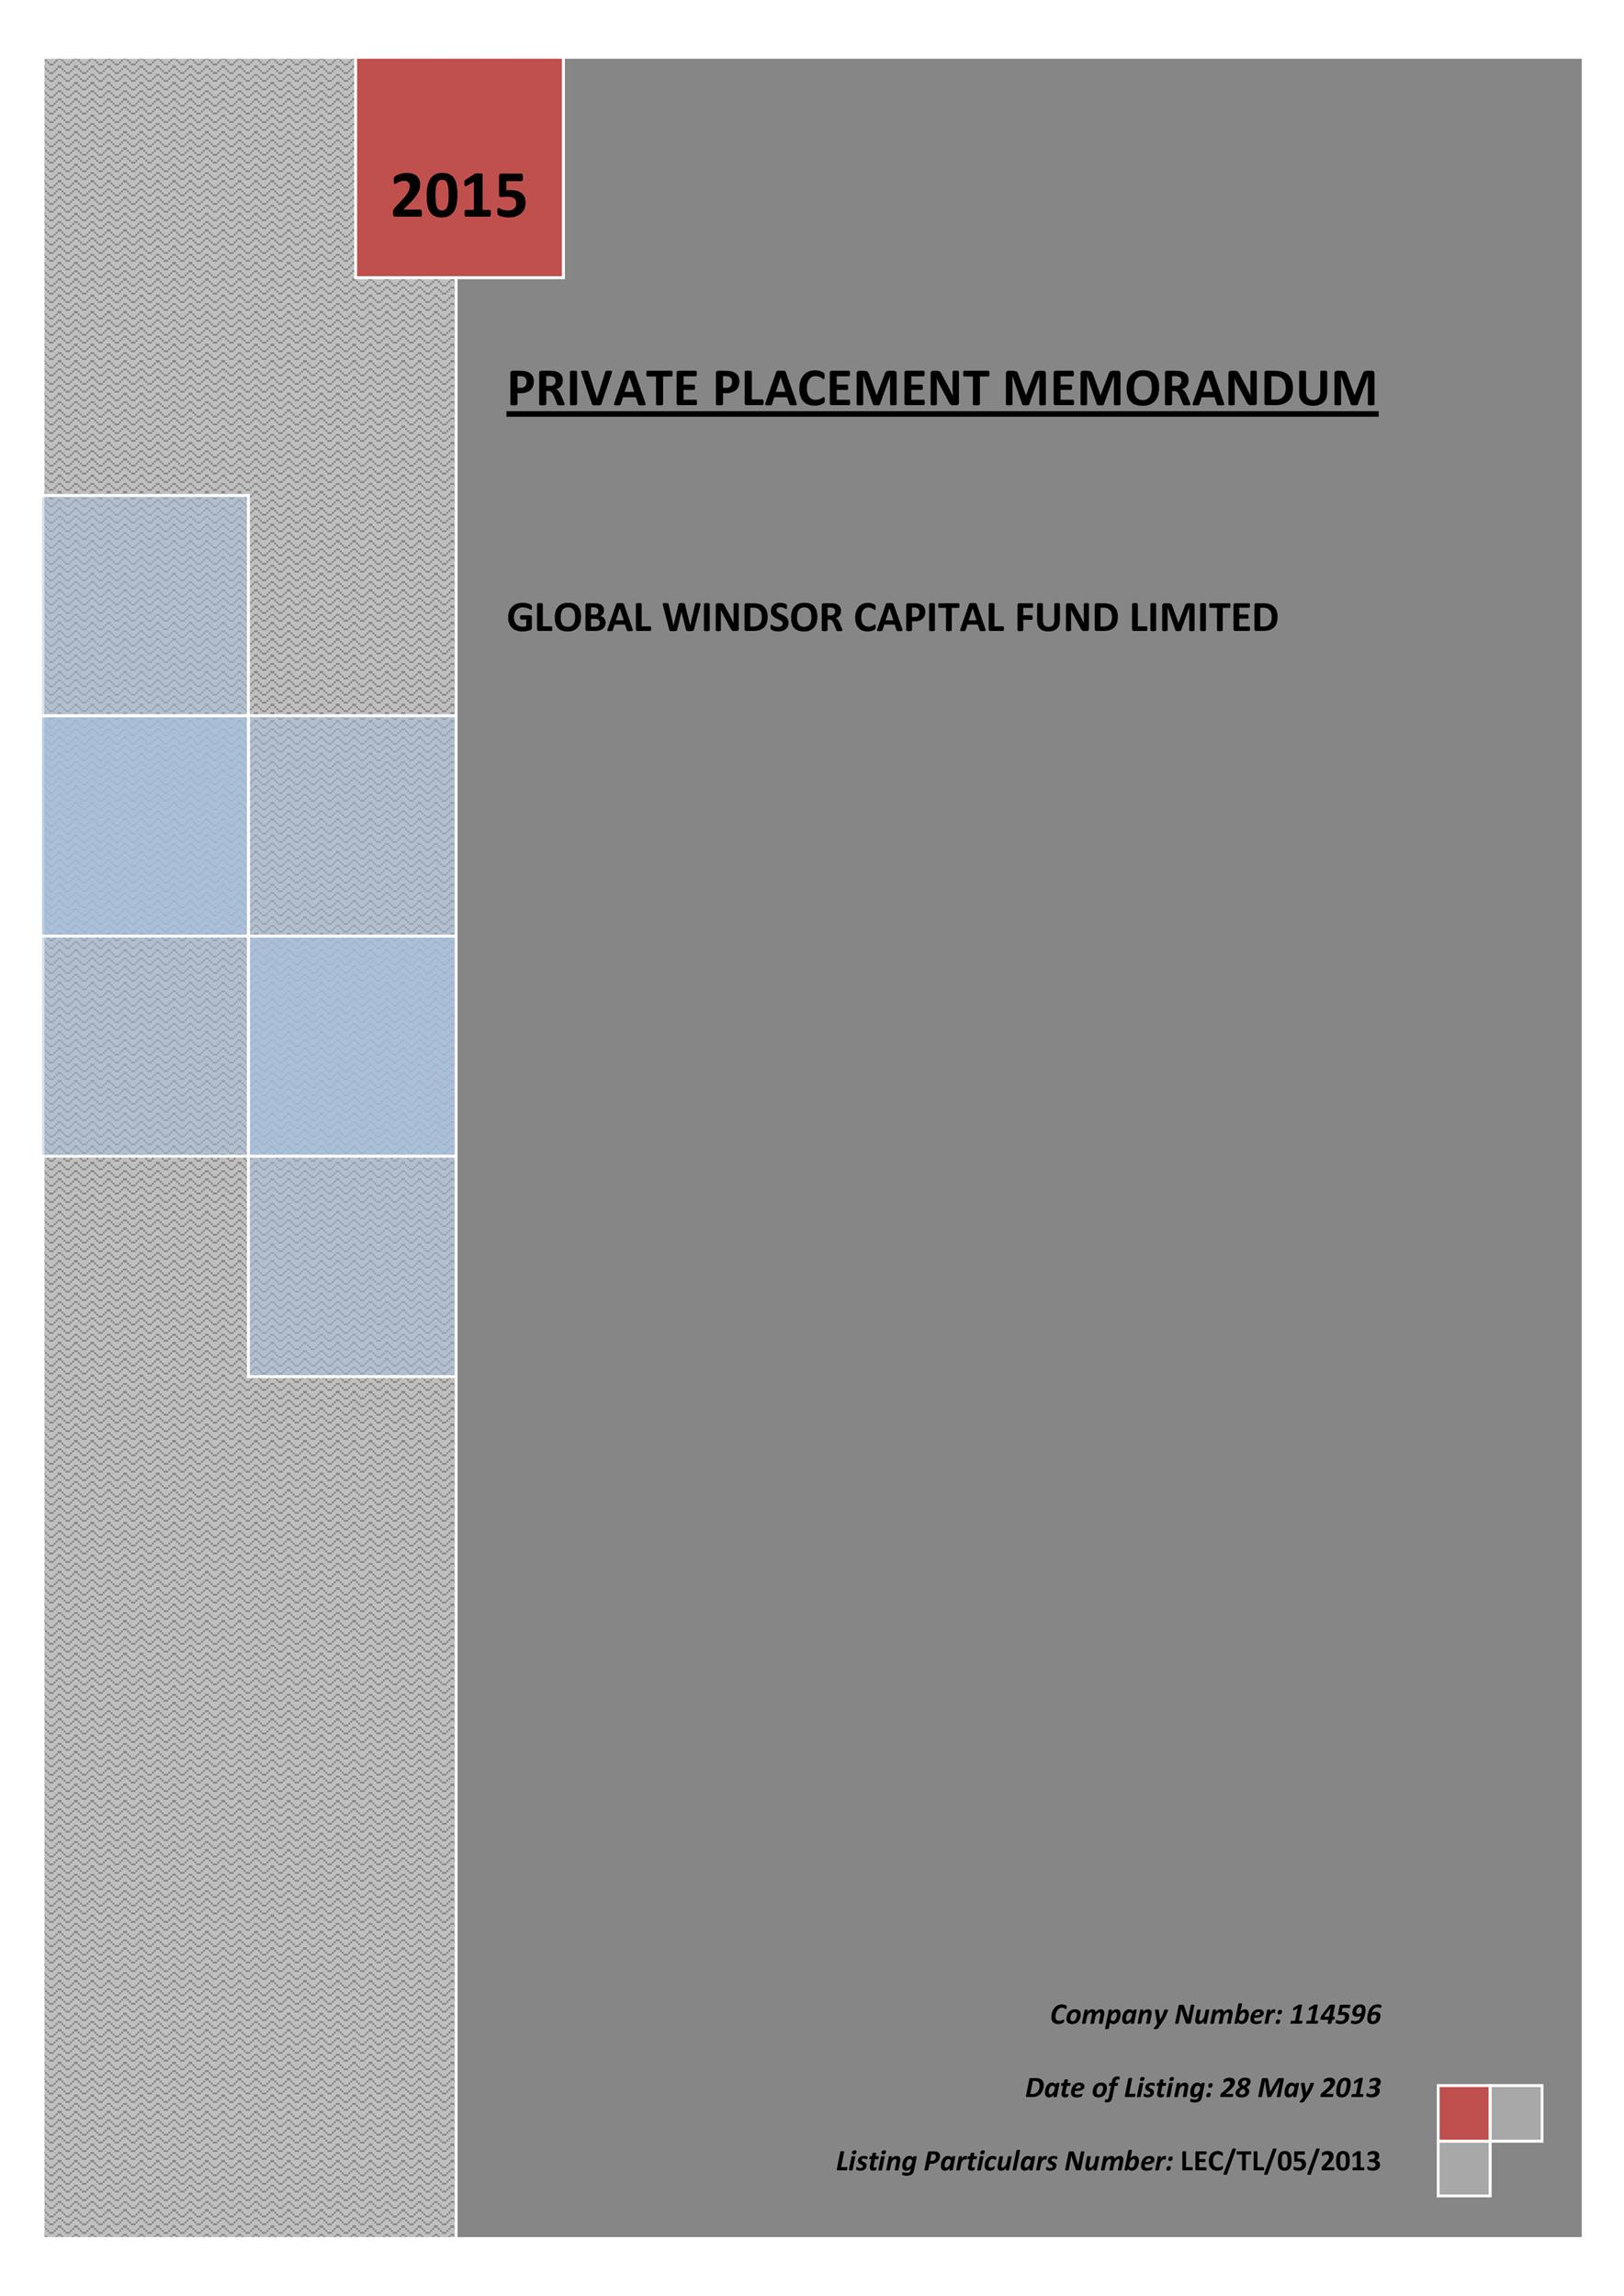 private placement memorandum template 06